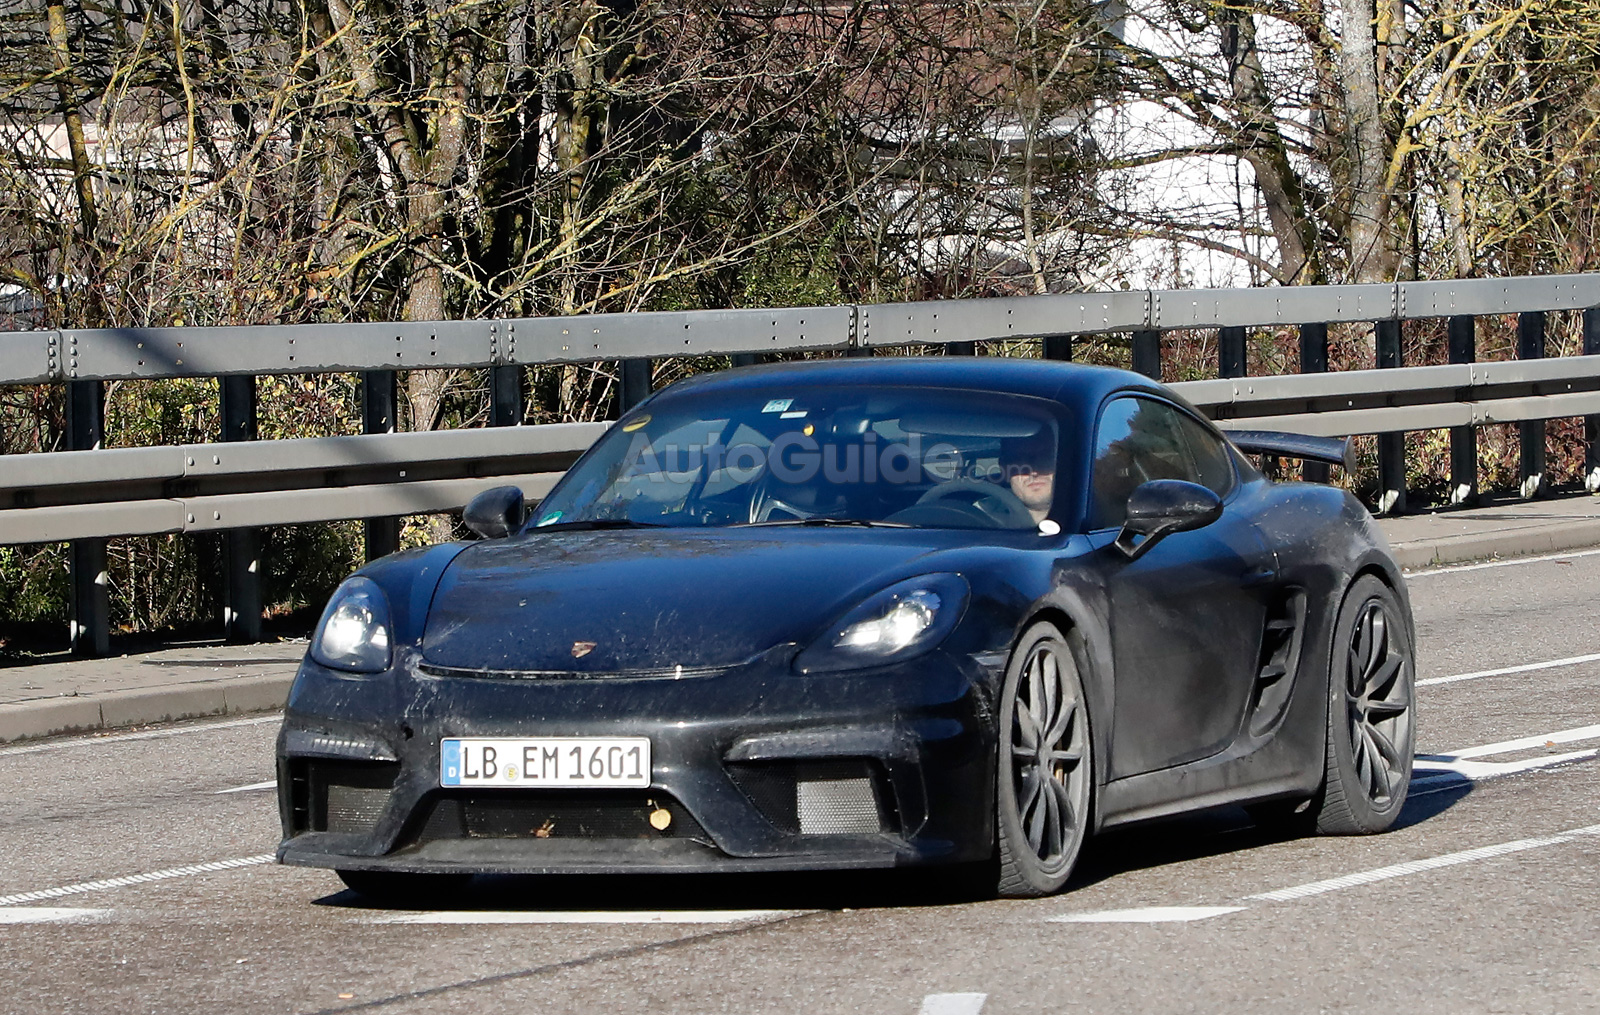 Spy Photographers Catch Porsche 718 Cayman Gt4 Testing Autoguide